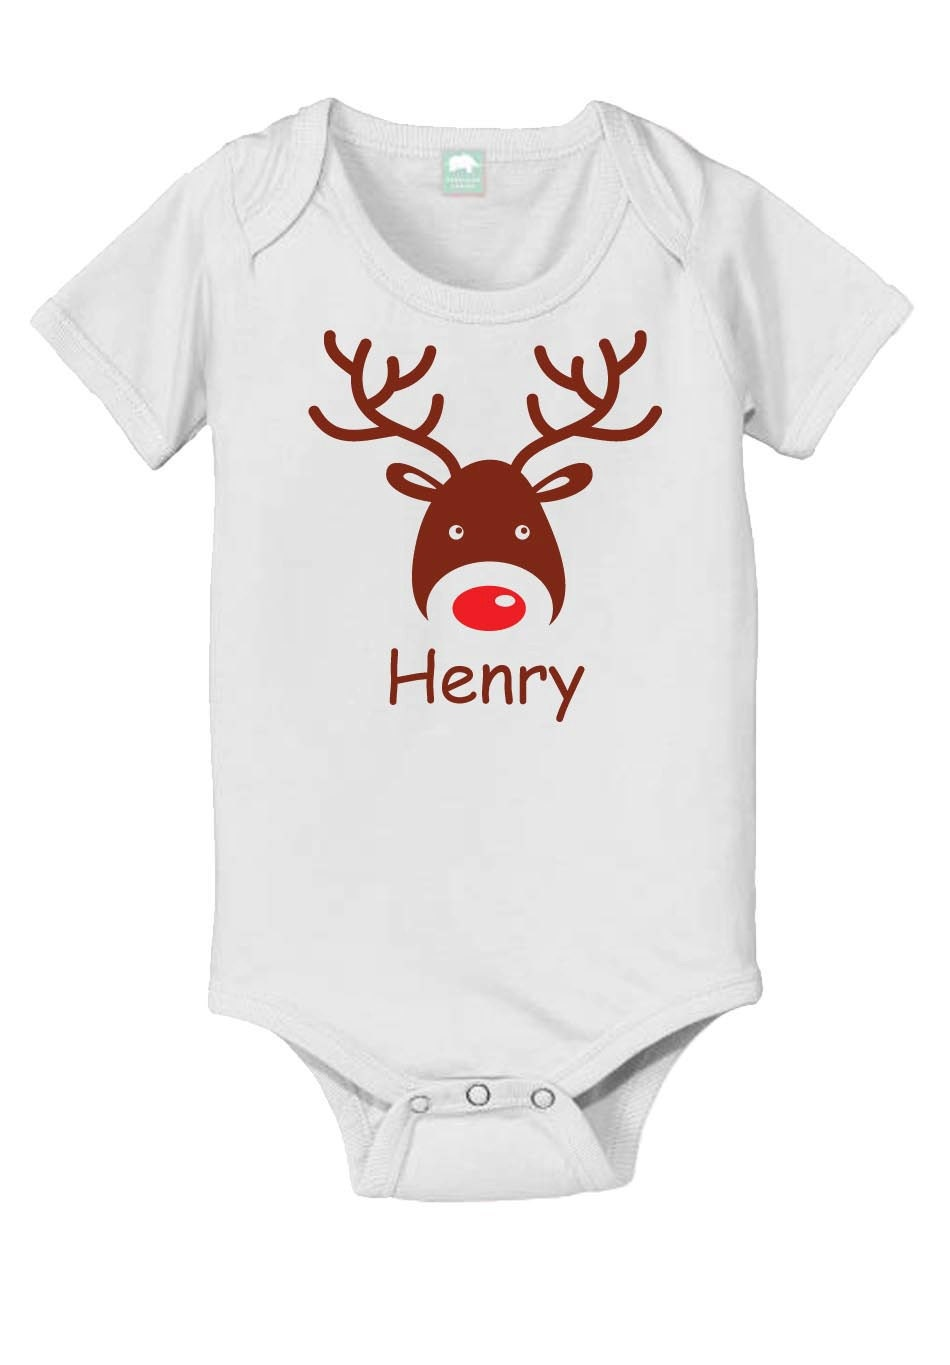 Items similar to Personalized reindeer baby onesie ...